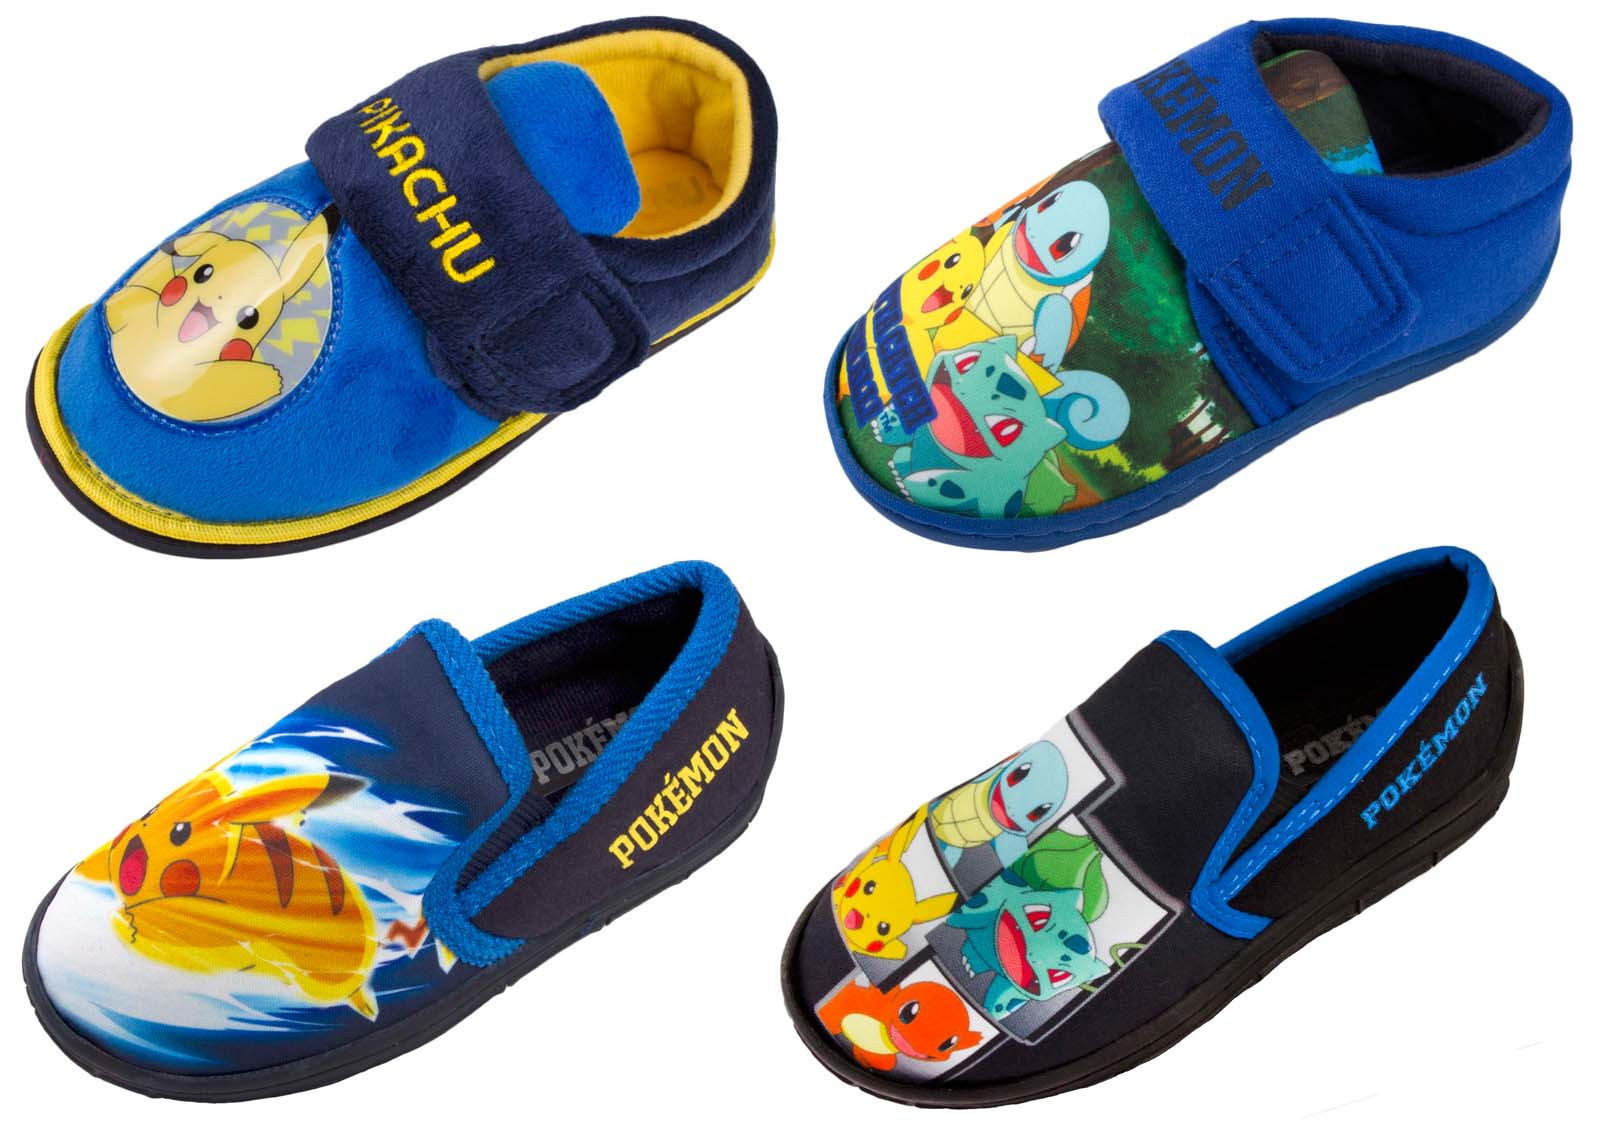 reputable site 085dc 71f54 Boys Pokemon GO Slippers Pikachu Bulbasaur Charmander Squirtle Mules Kids  Size